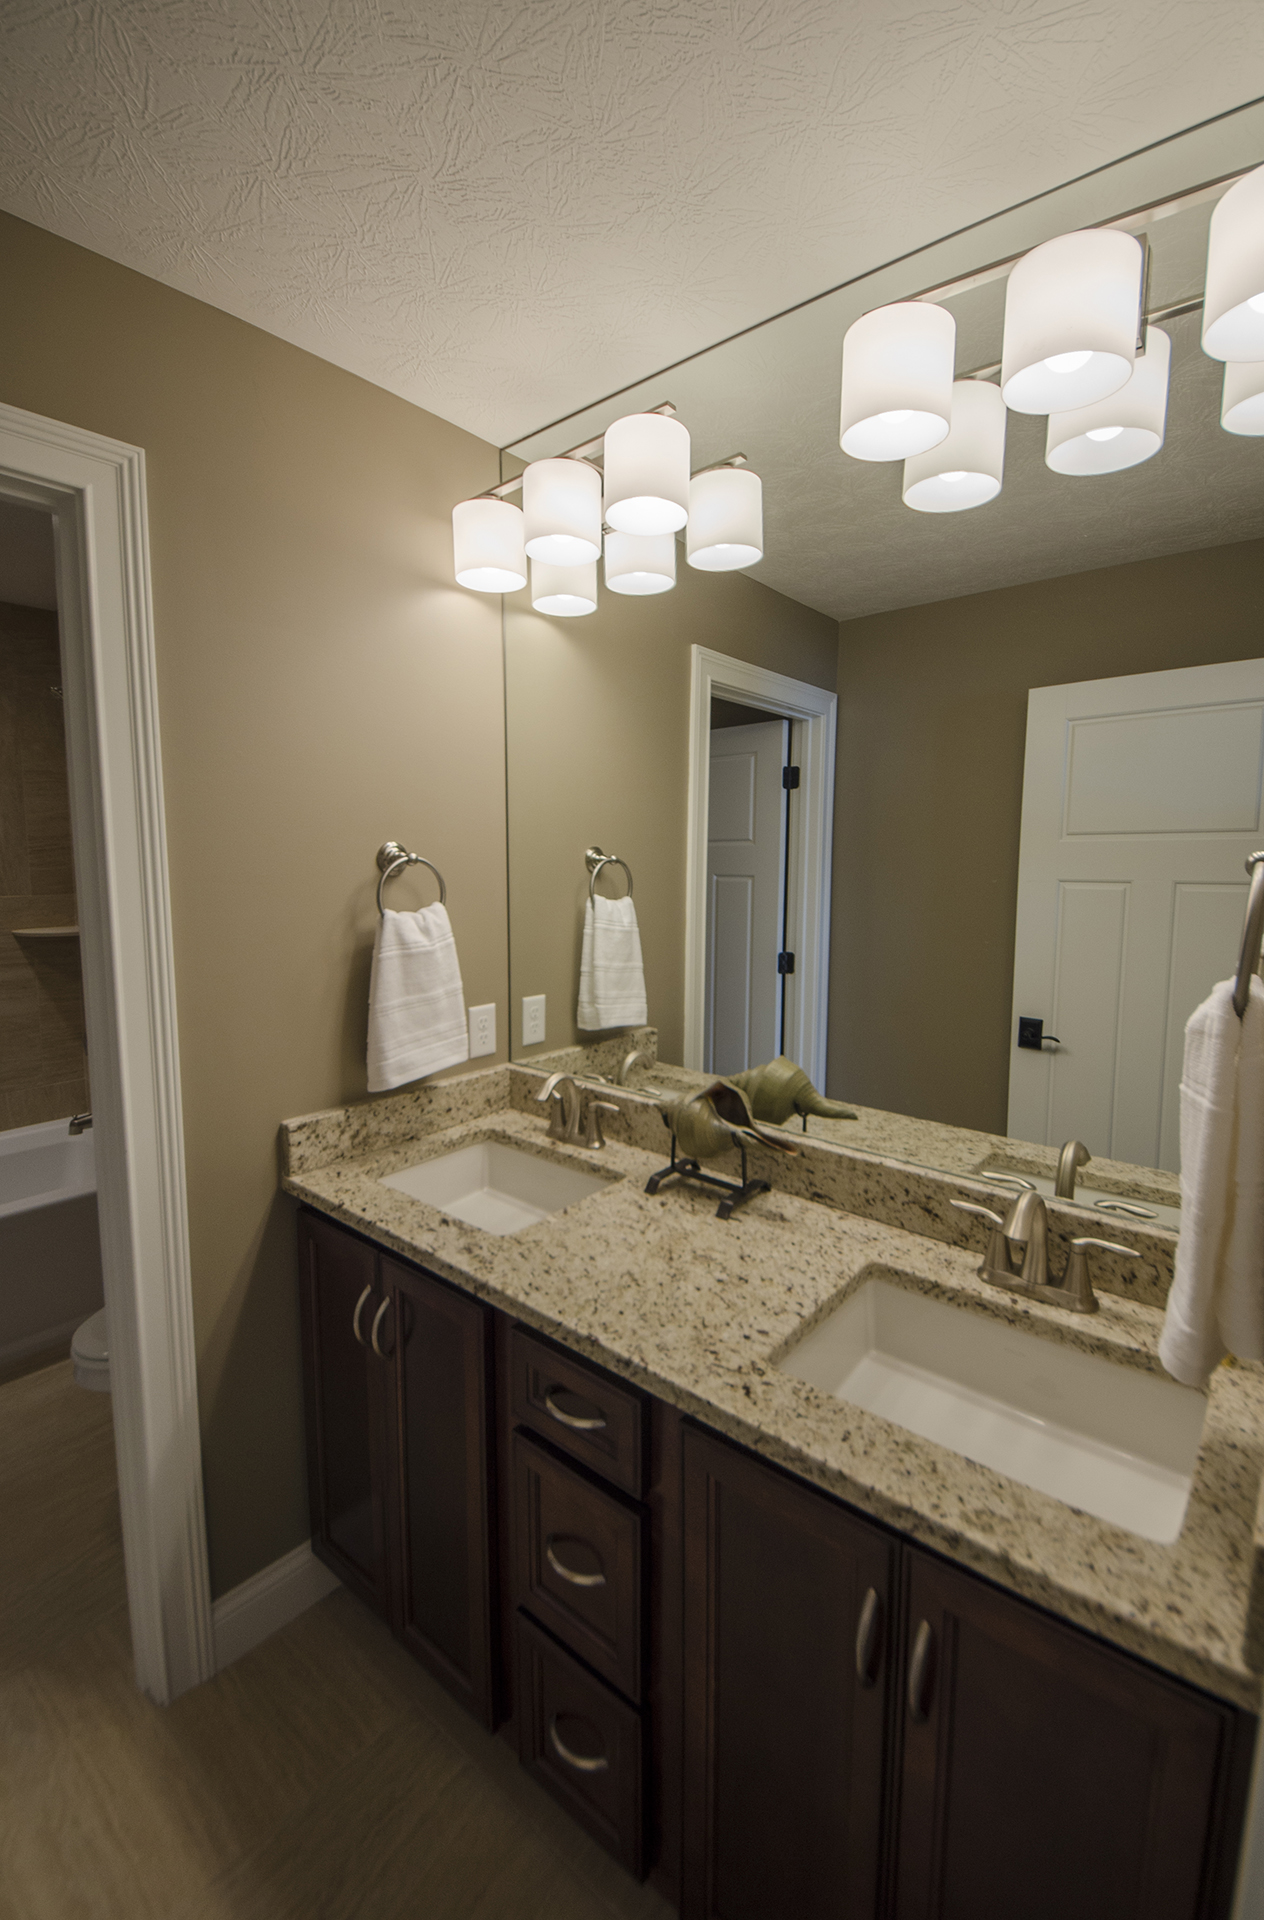 100 model home bathrooms model homes in northgrove for Model bathrooms pictures